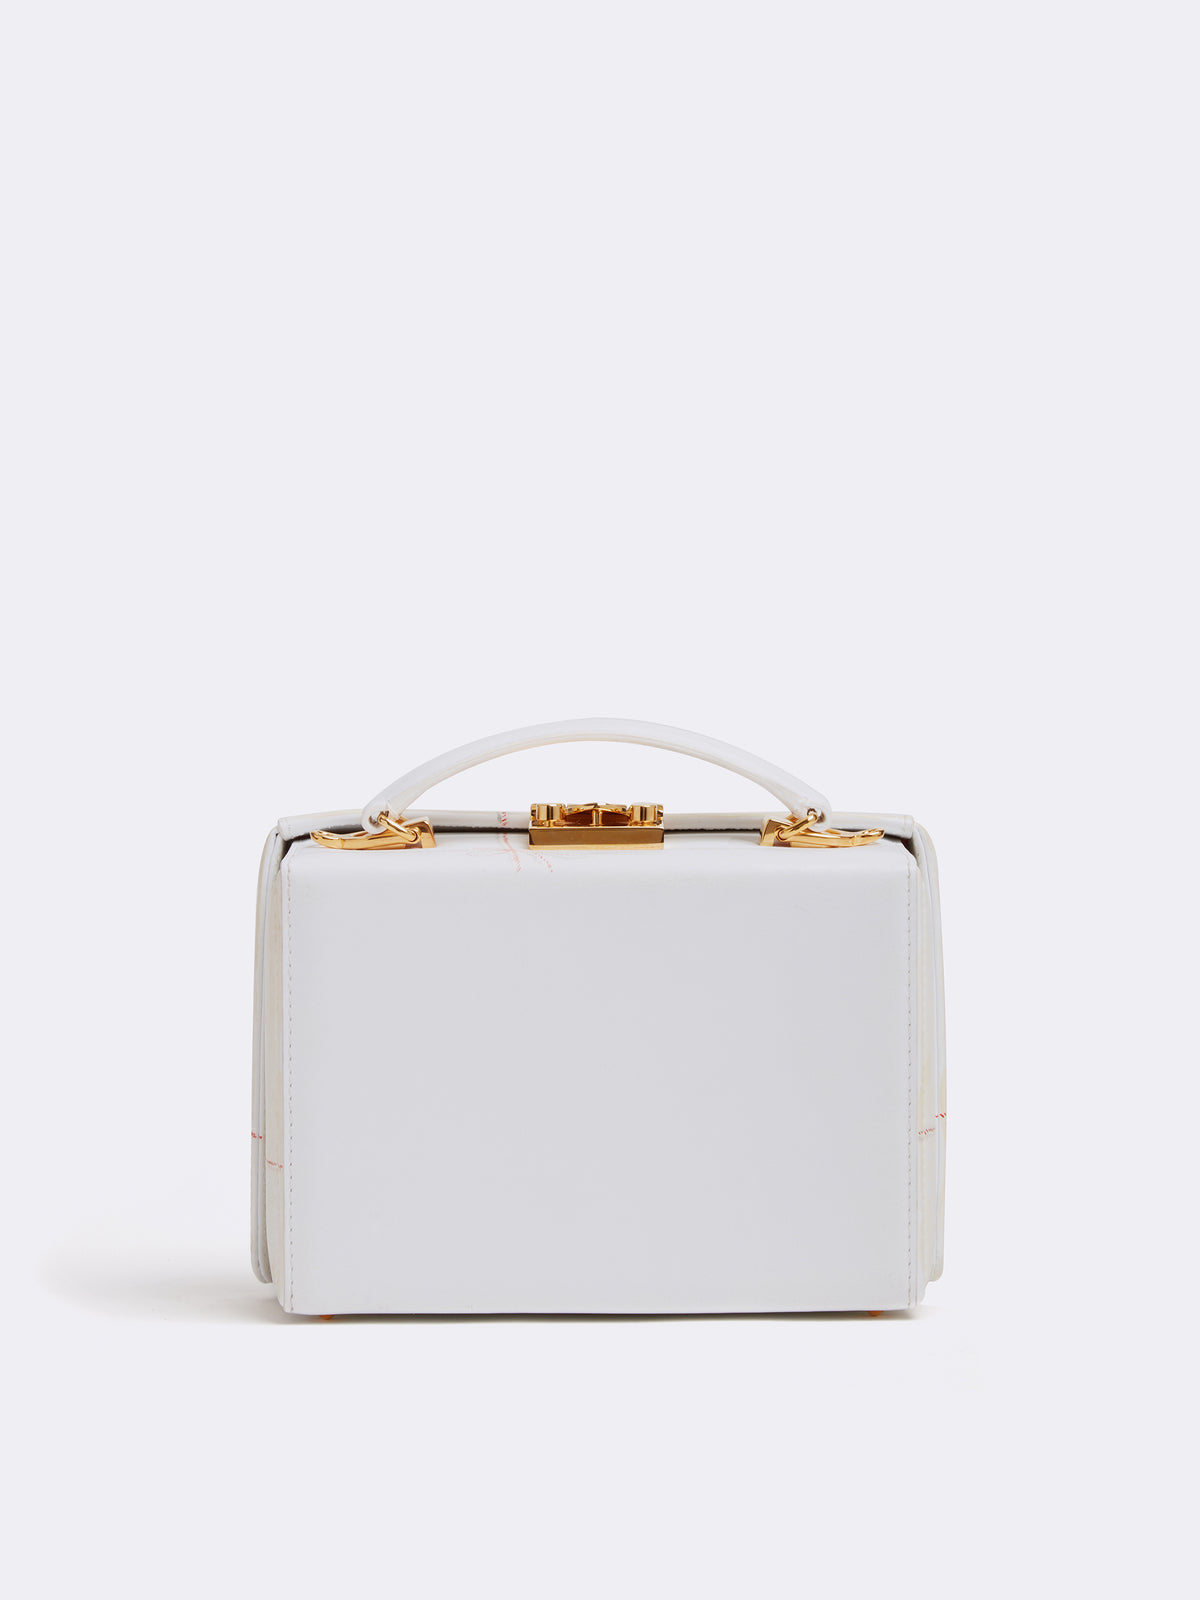 Sophie Matisse x Mark Cross Grace Small Leather Box Bag Smooth Calf White / Letter Back